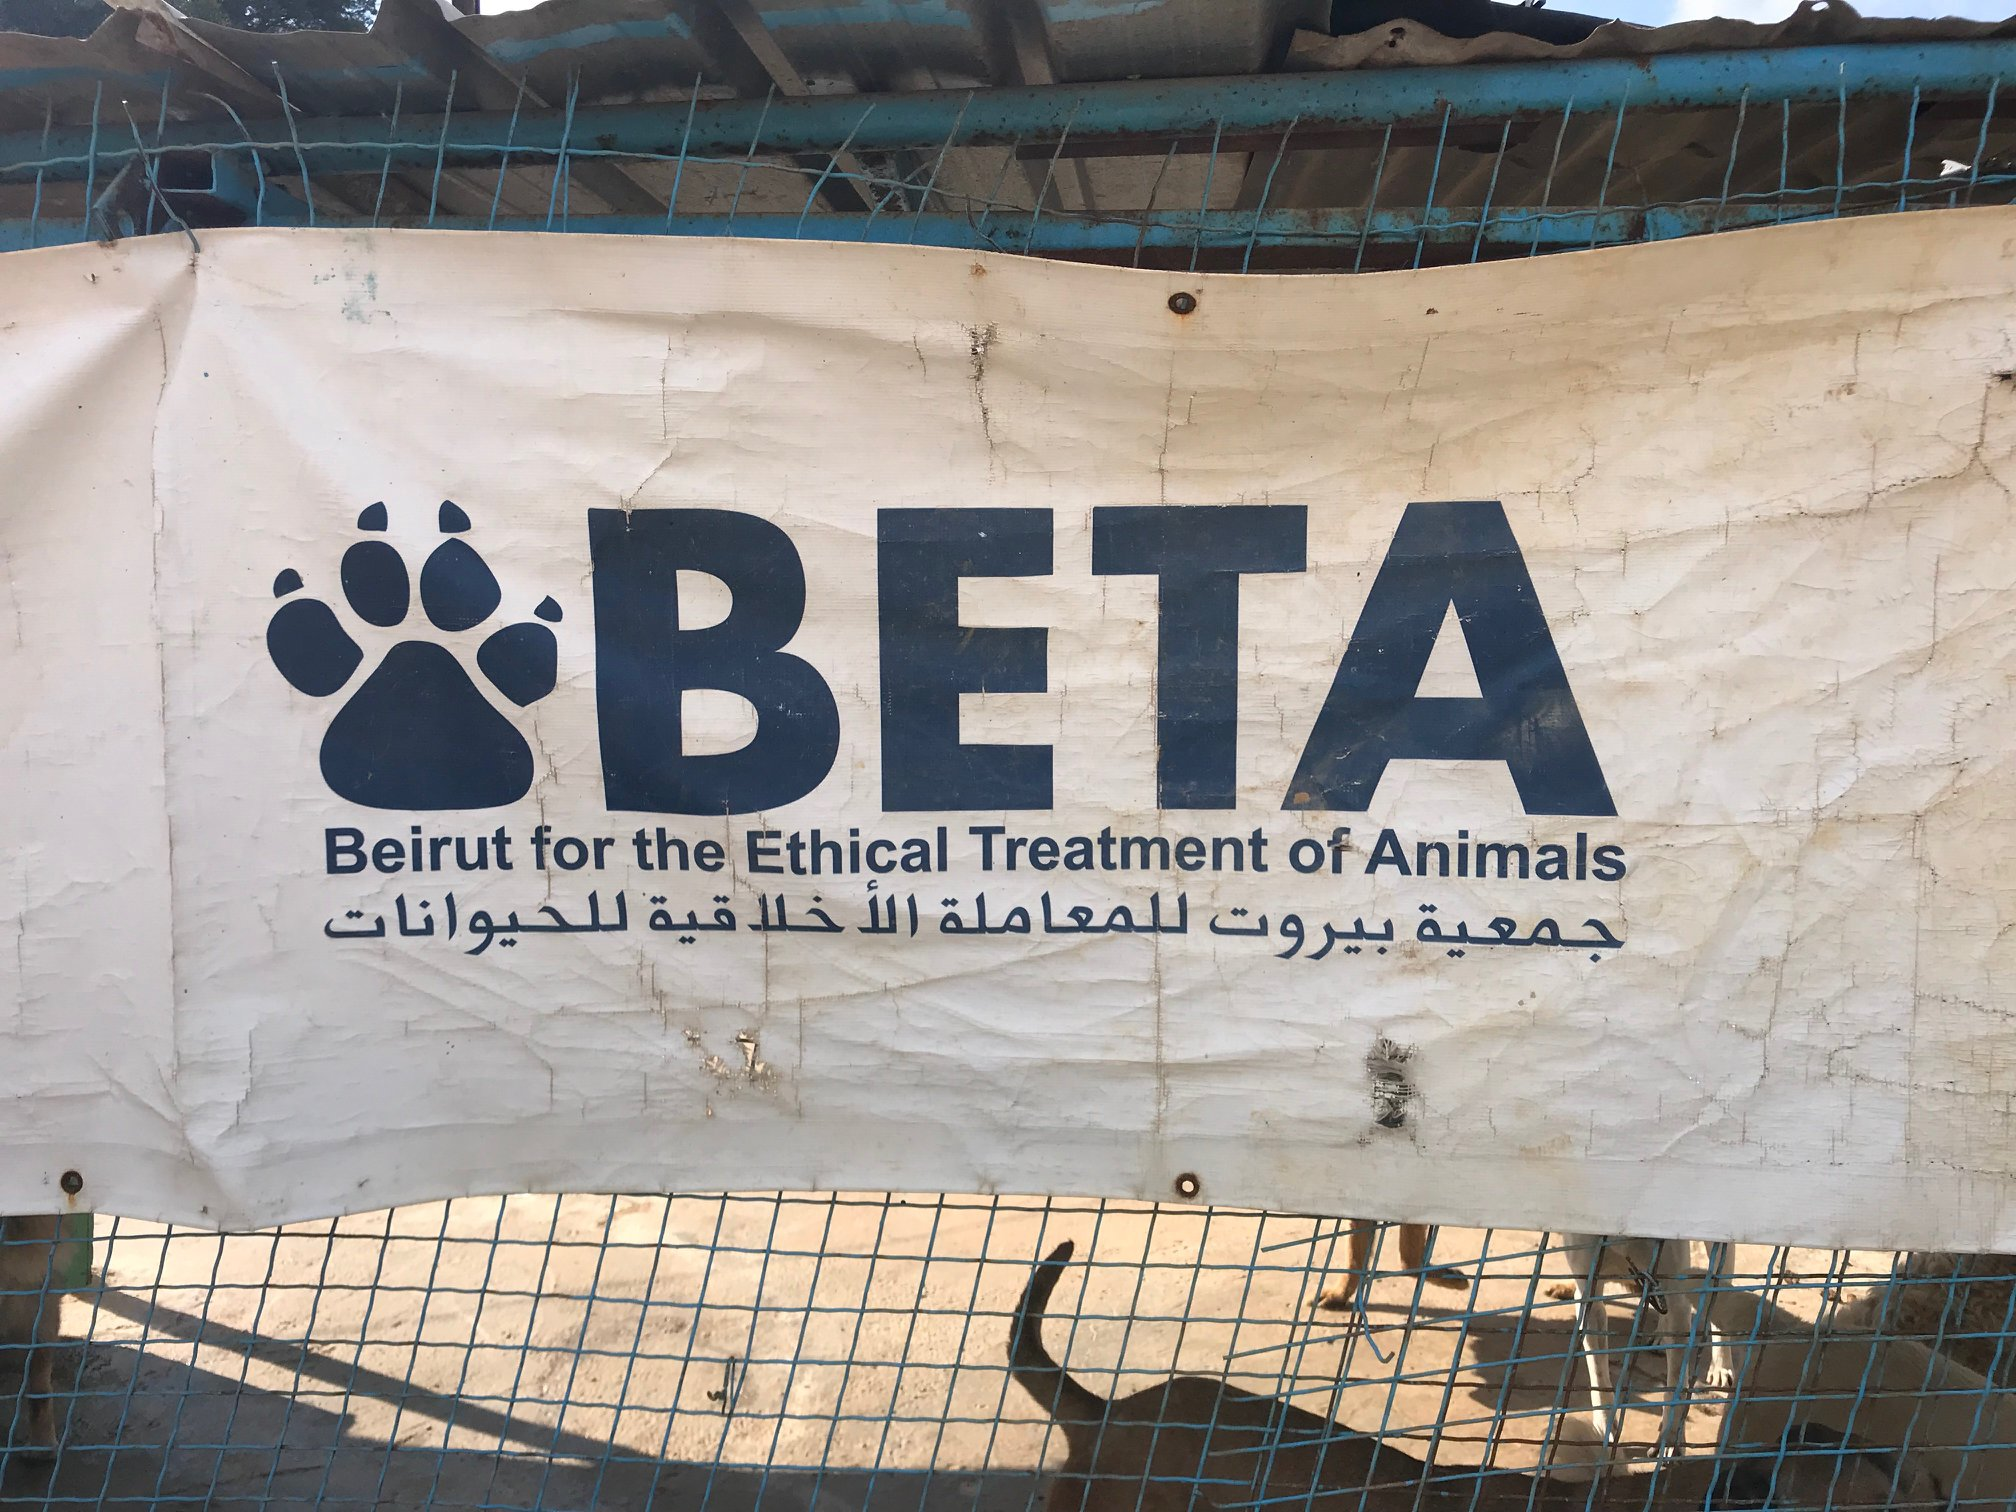 Lebanon & Beirut for the Ethical Treatment of Animals (BETA) Rescue Mission